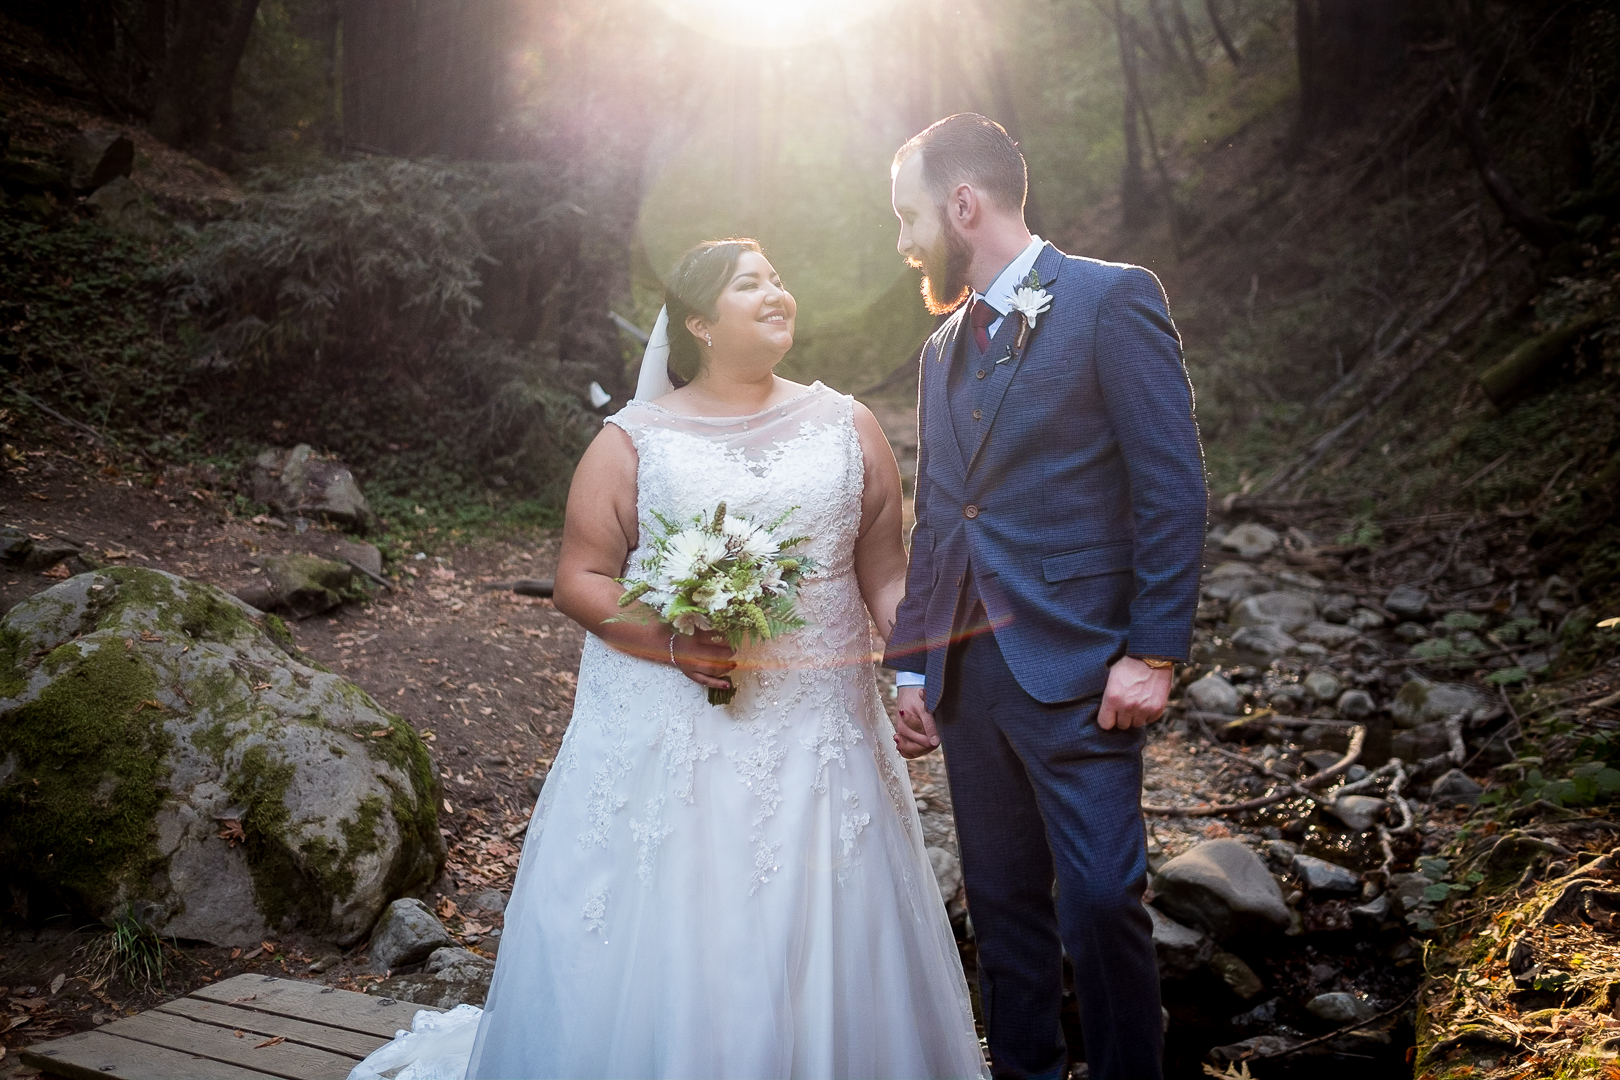 Beautiful sun flare over the lovely couple.